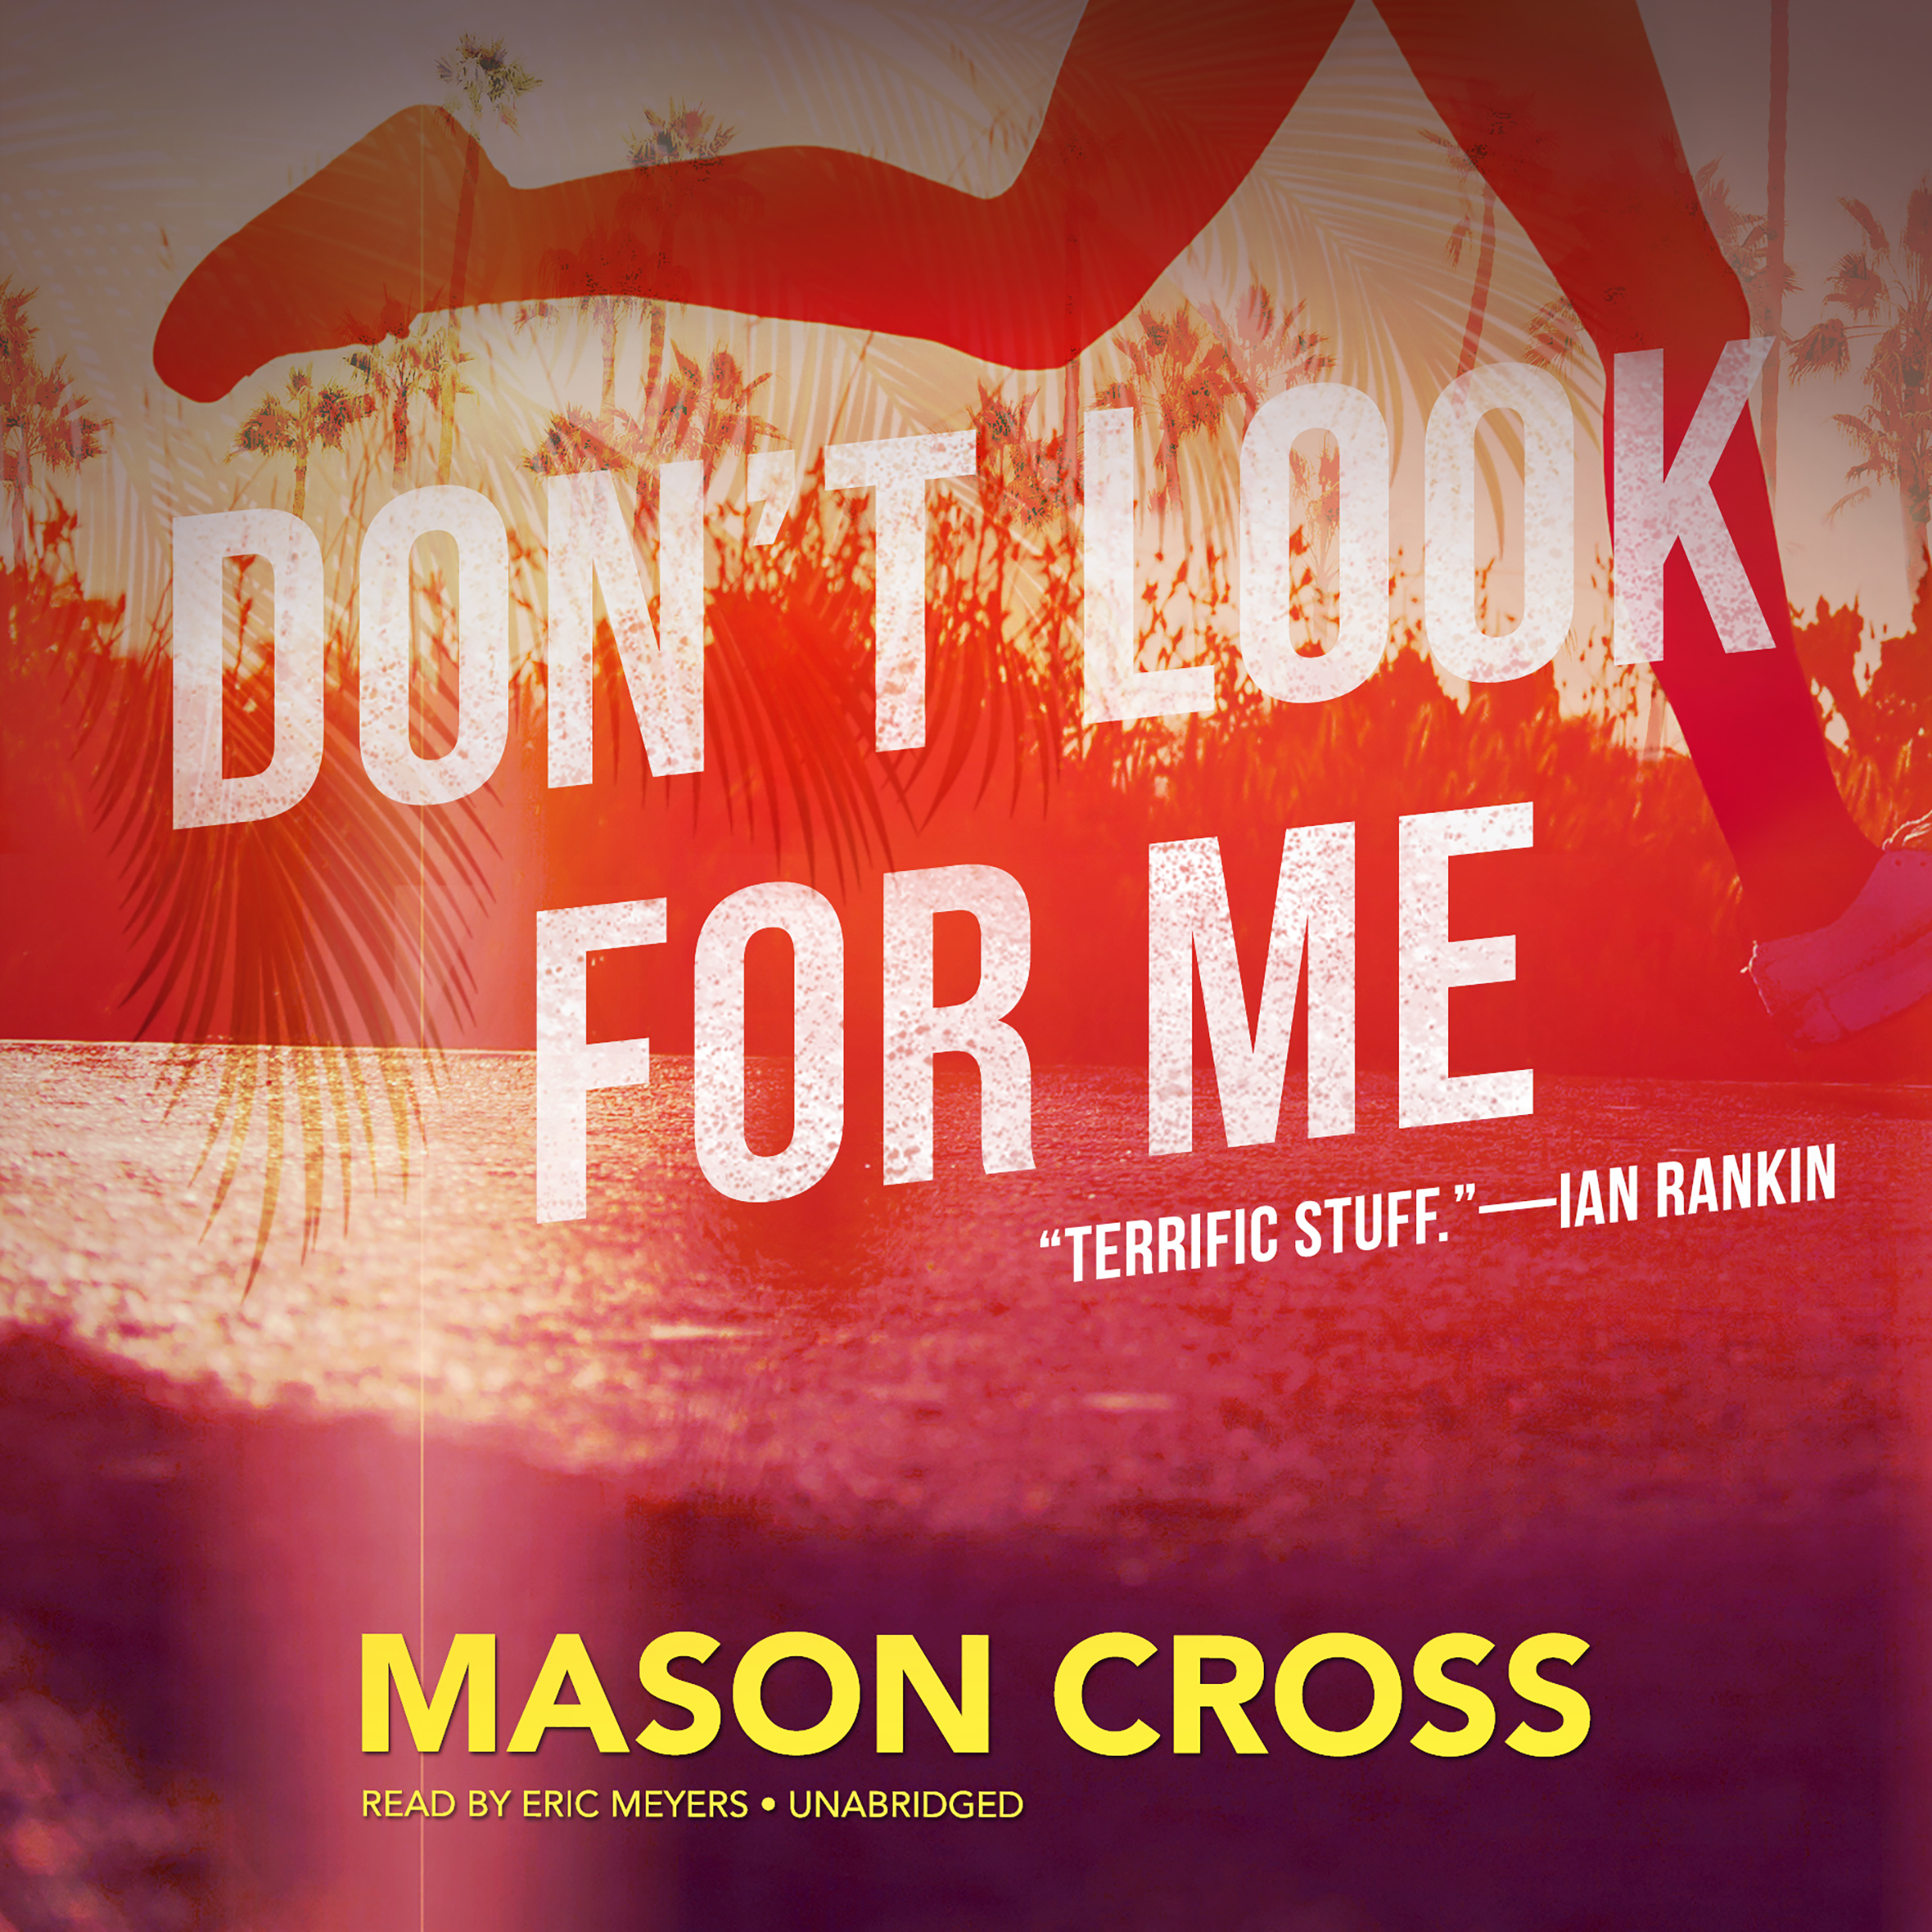 Printable Don't Look for Me: A Novel Audiobook Cover Art